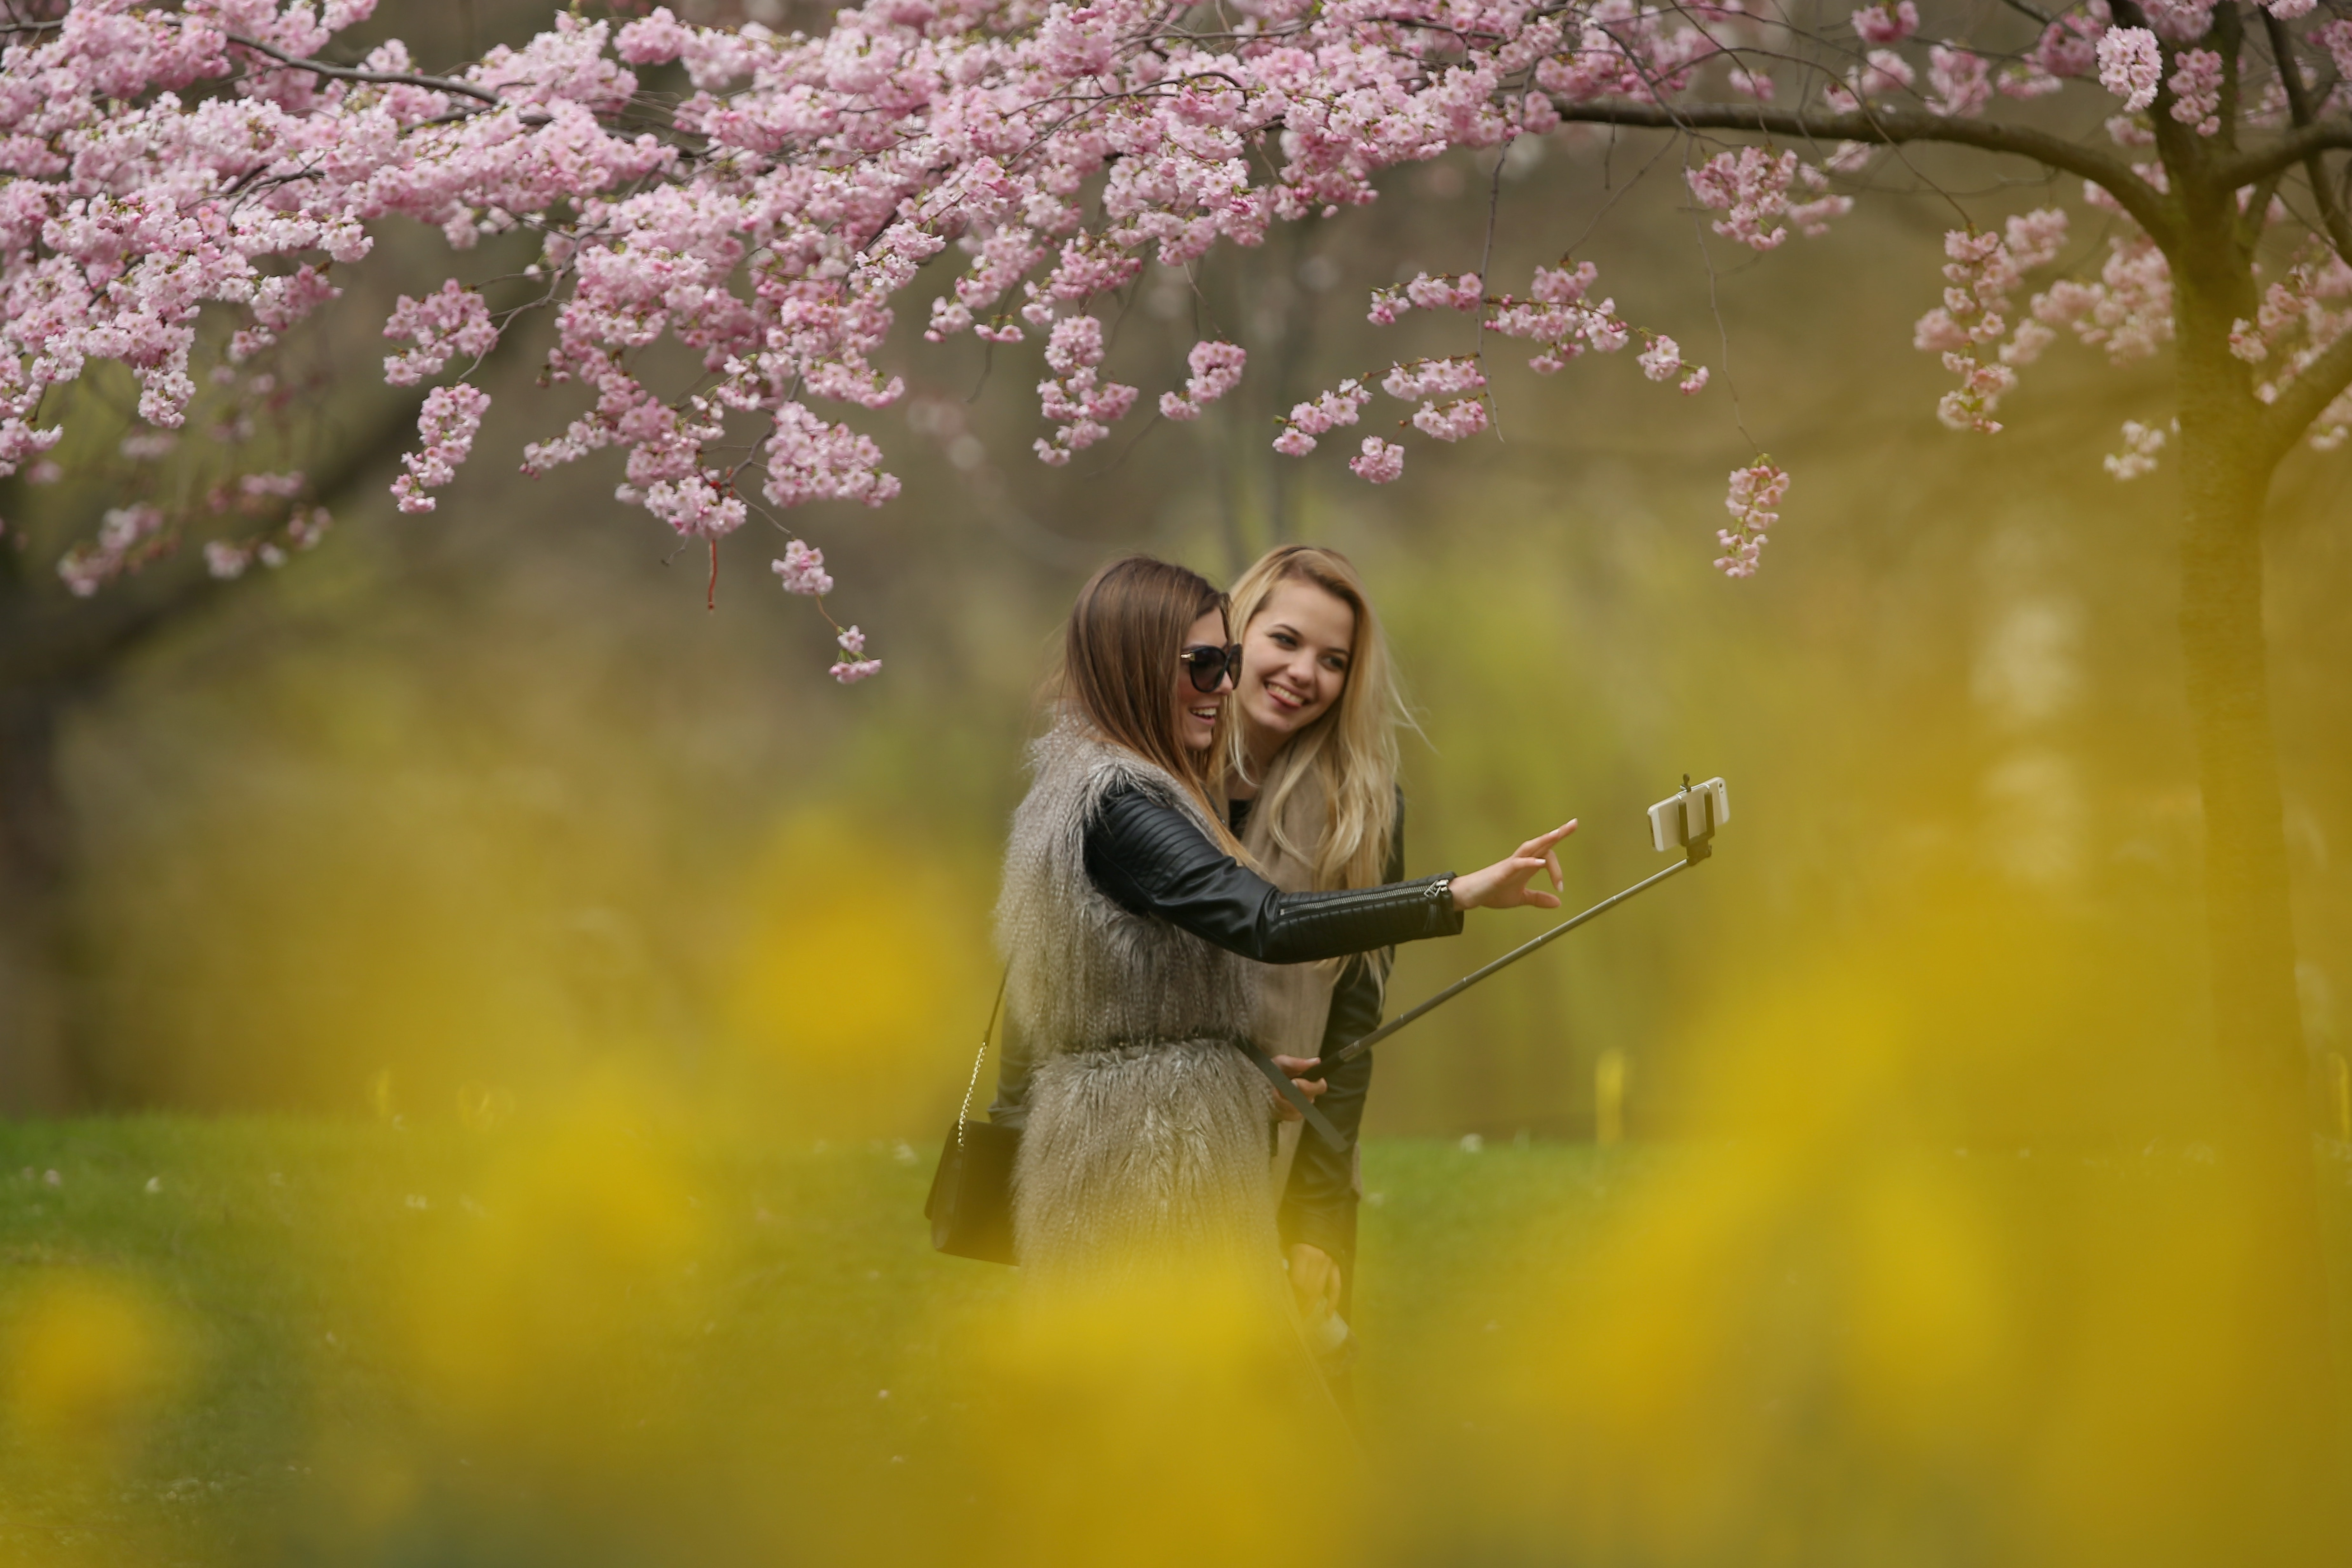 Nature selfies might be more useful than we think.